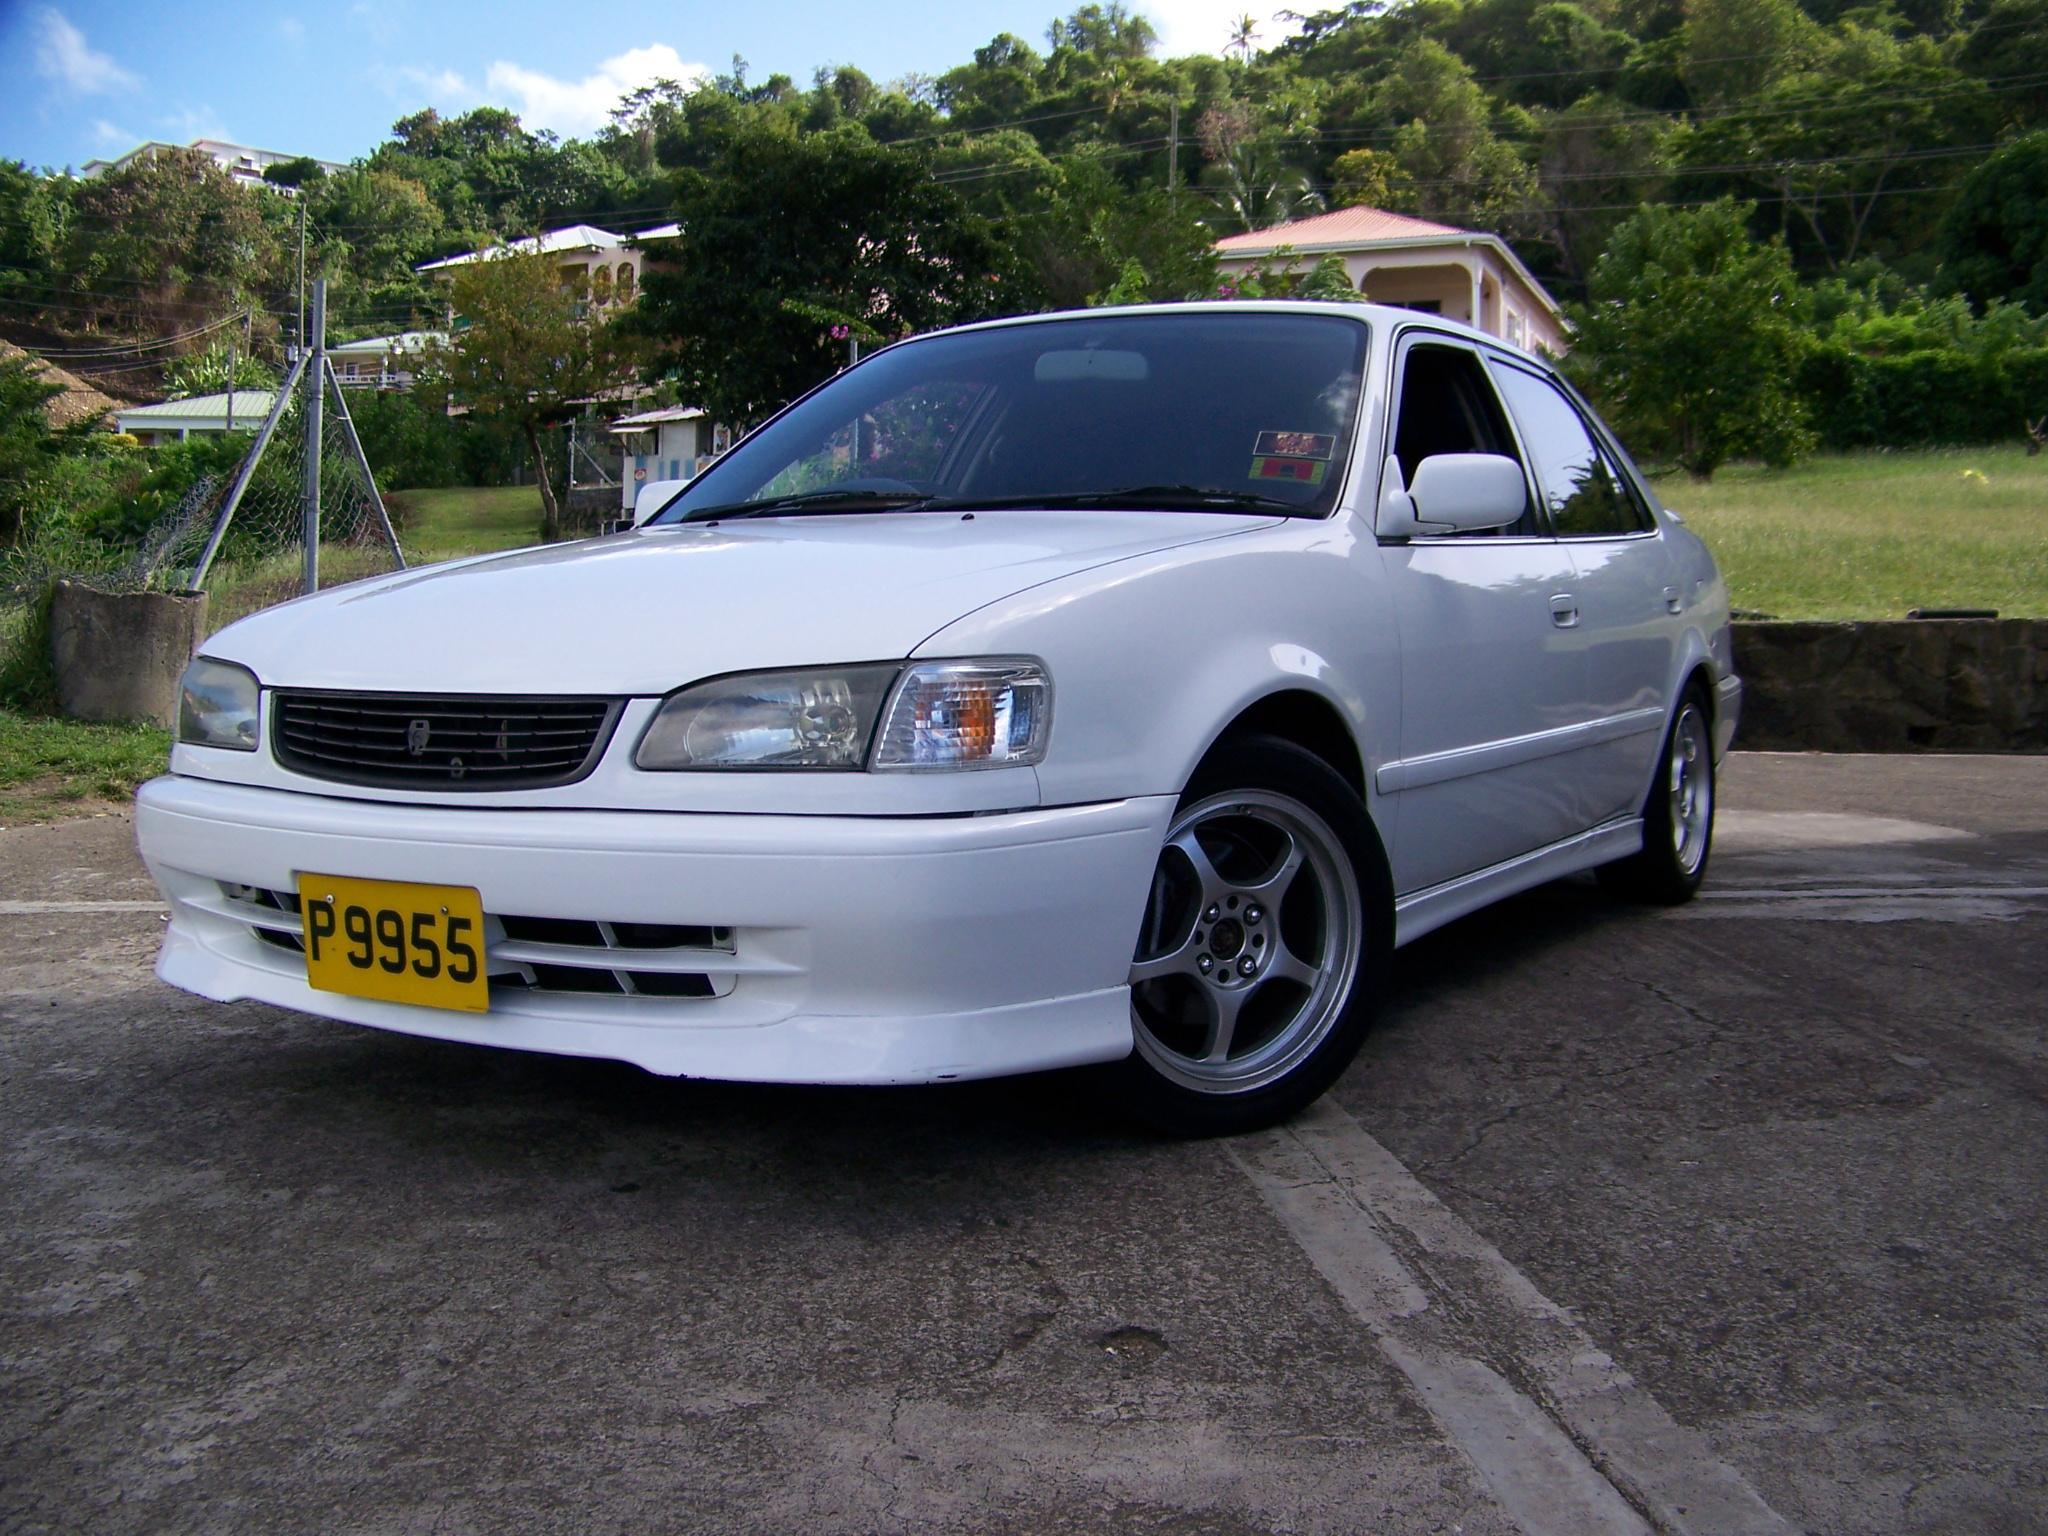 sirslack 1999 toyota corolla specs photos modification info at cardomain. Black Bedroom Furniture Sets. Home Design Ideas